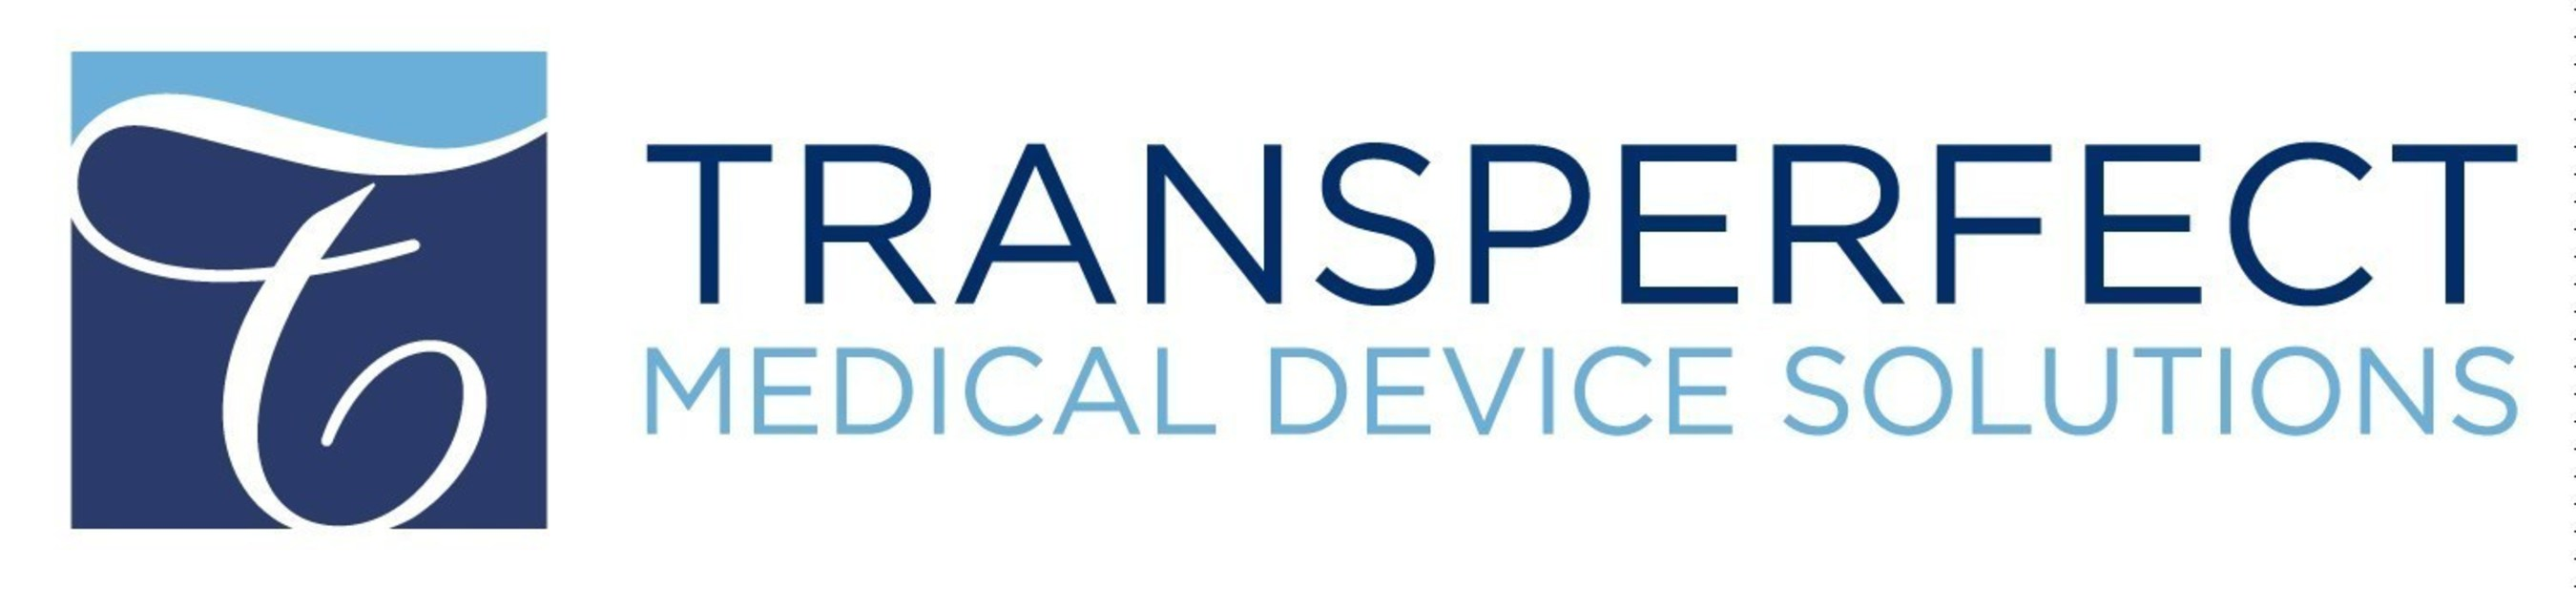 TransPerfect and 121nexus Partner to Create First 'Closed Loop' Digital Labeling System for Medical Device Makers